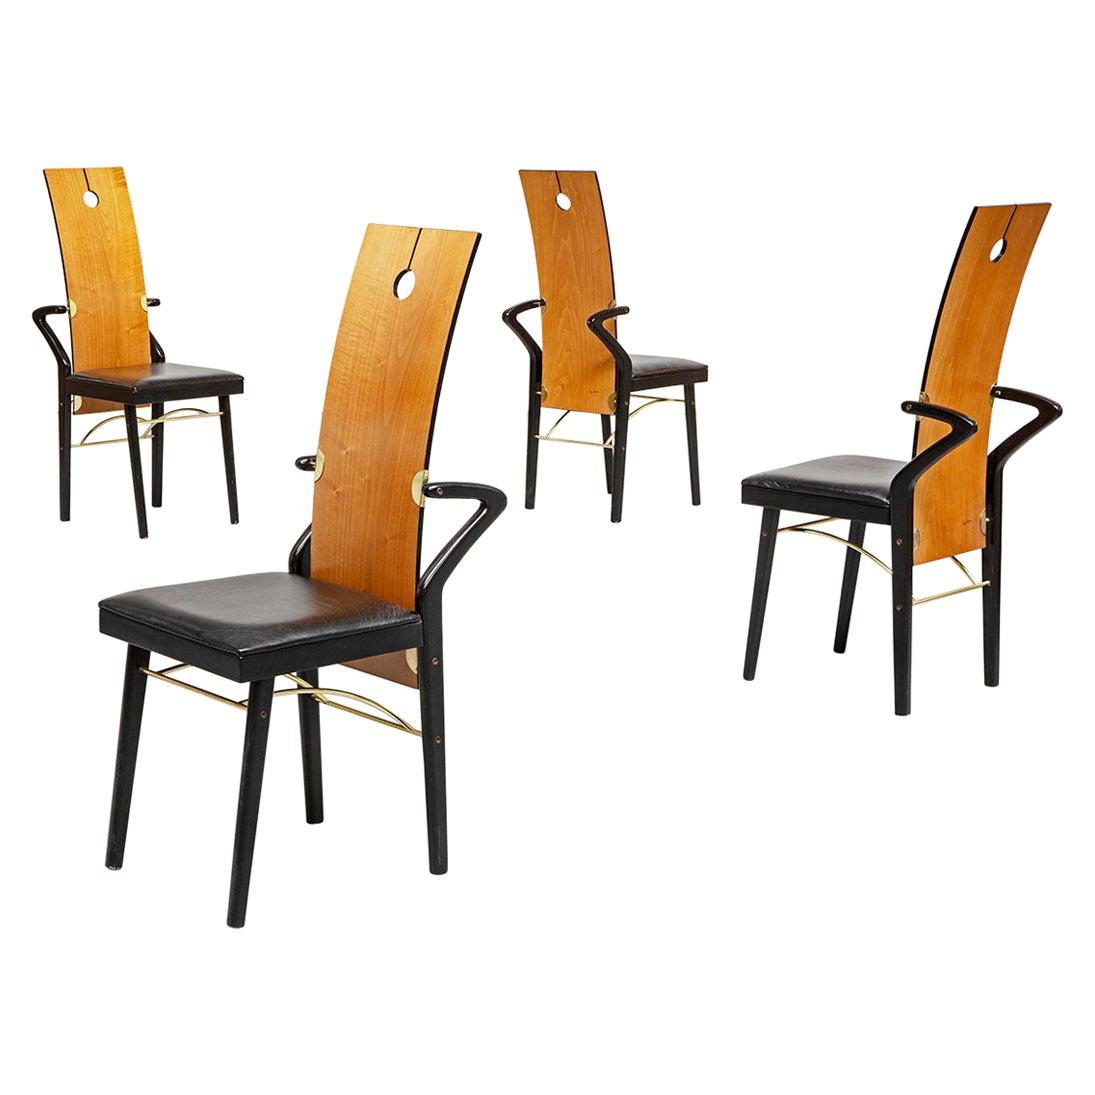 Dining Chair by Pierre Cardin, 1980s